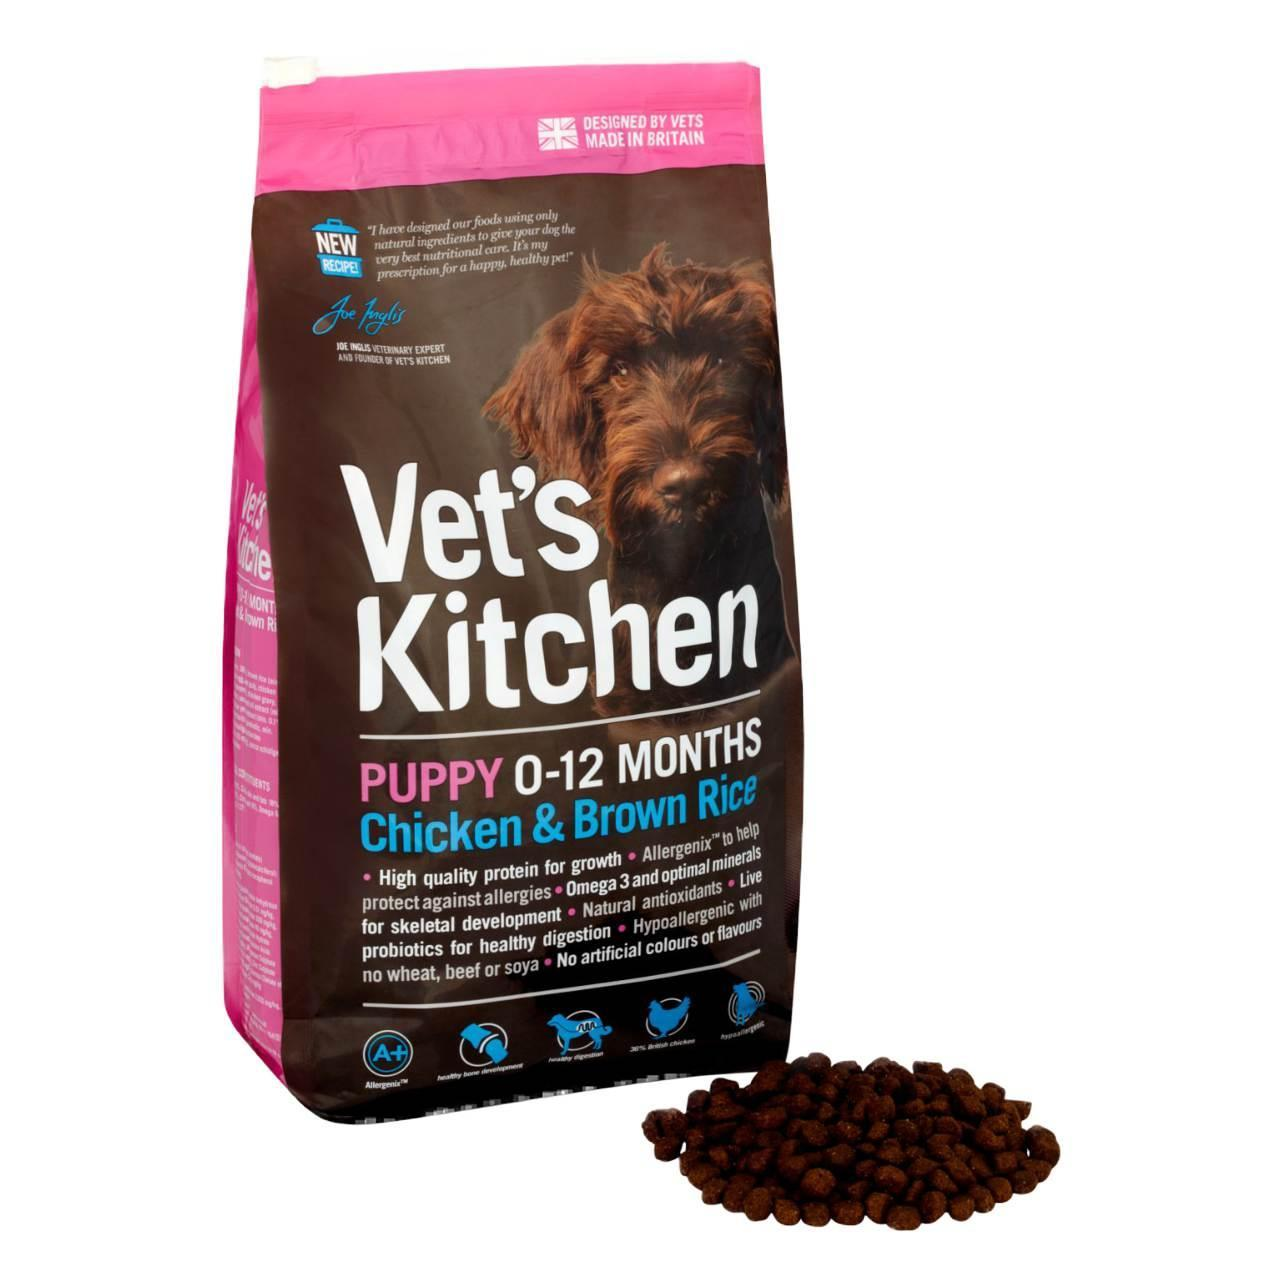 An image of Vets Kitchen Puppy Chicken & Brown Rice